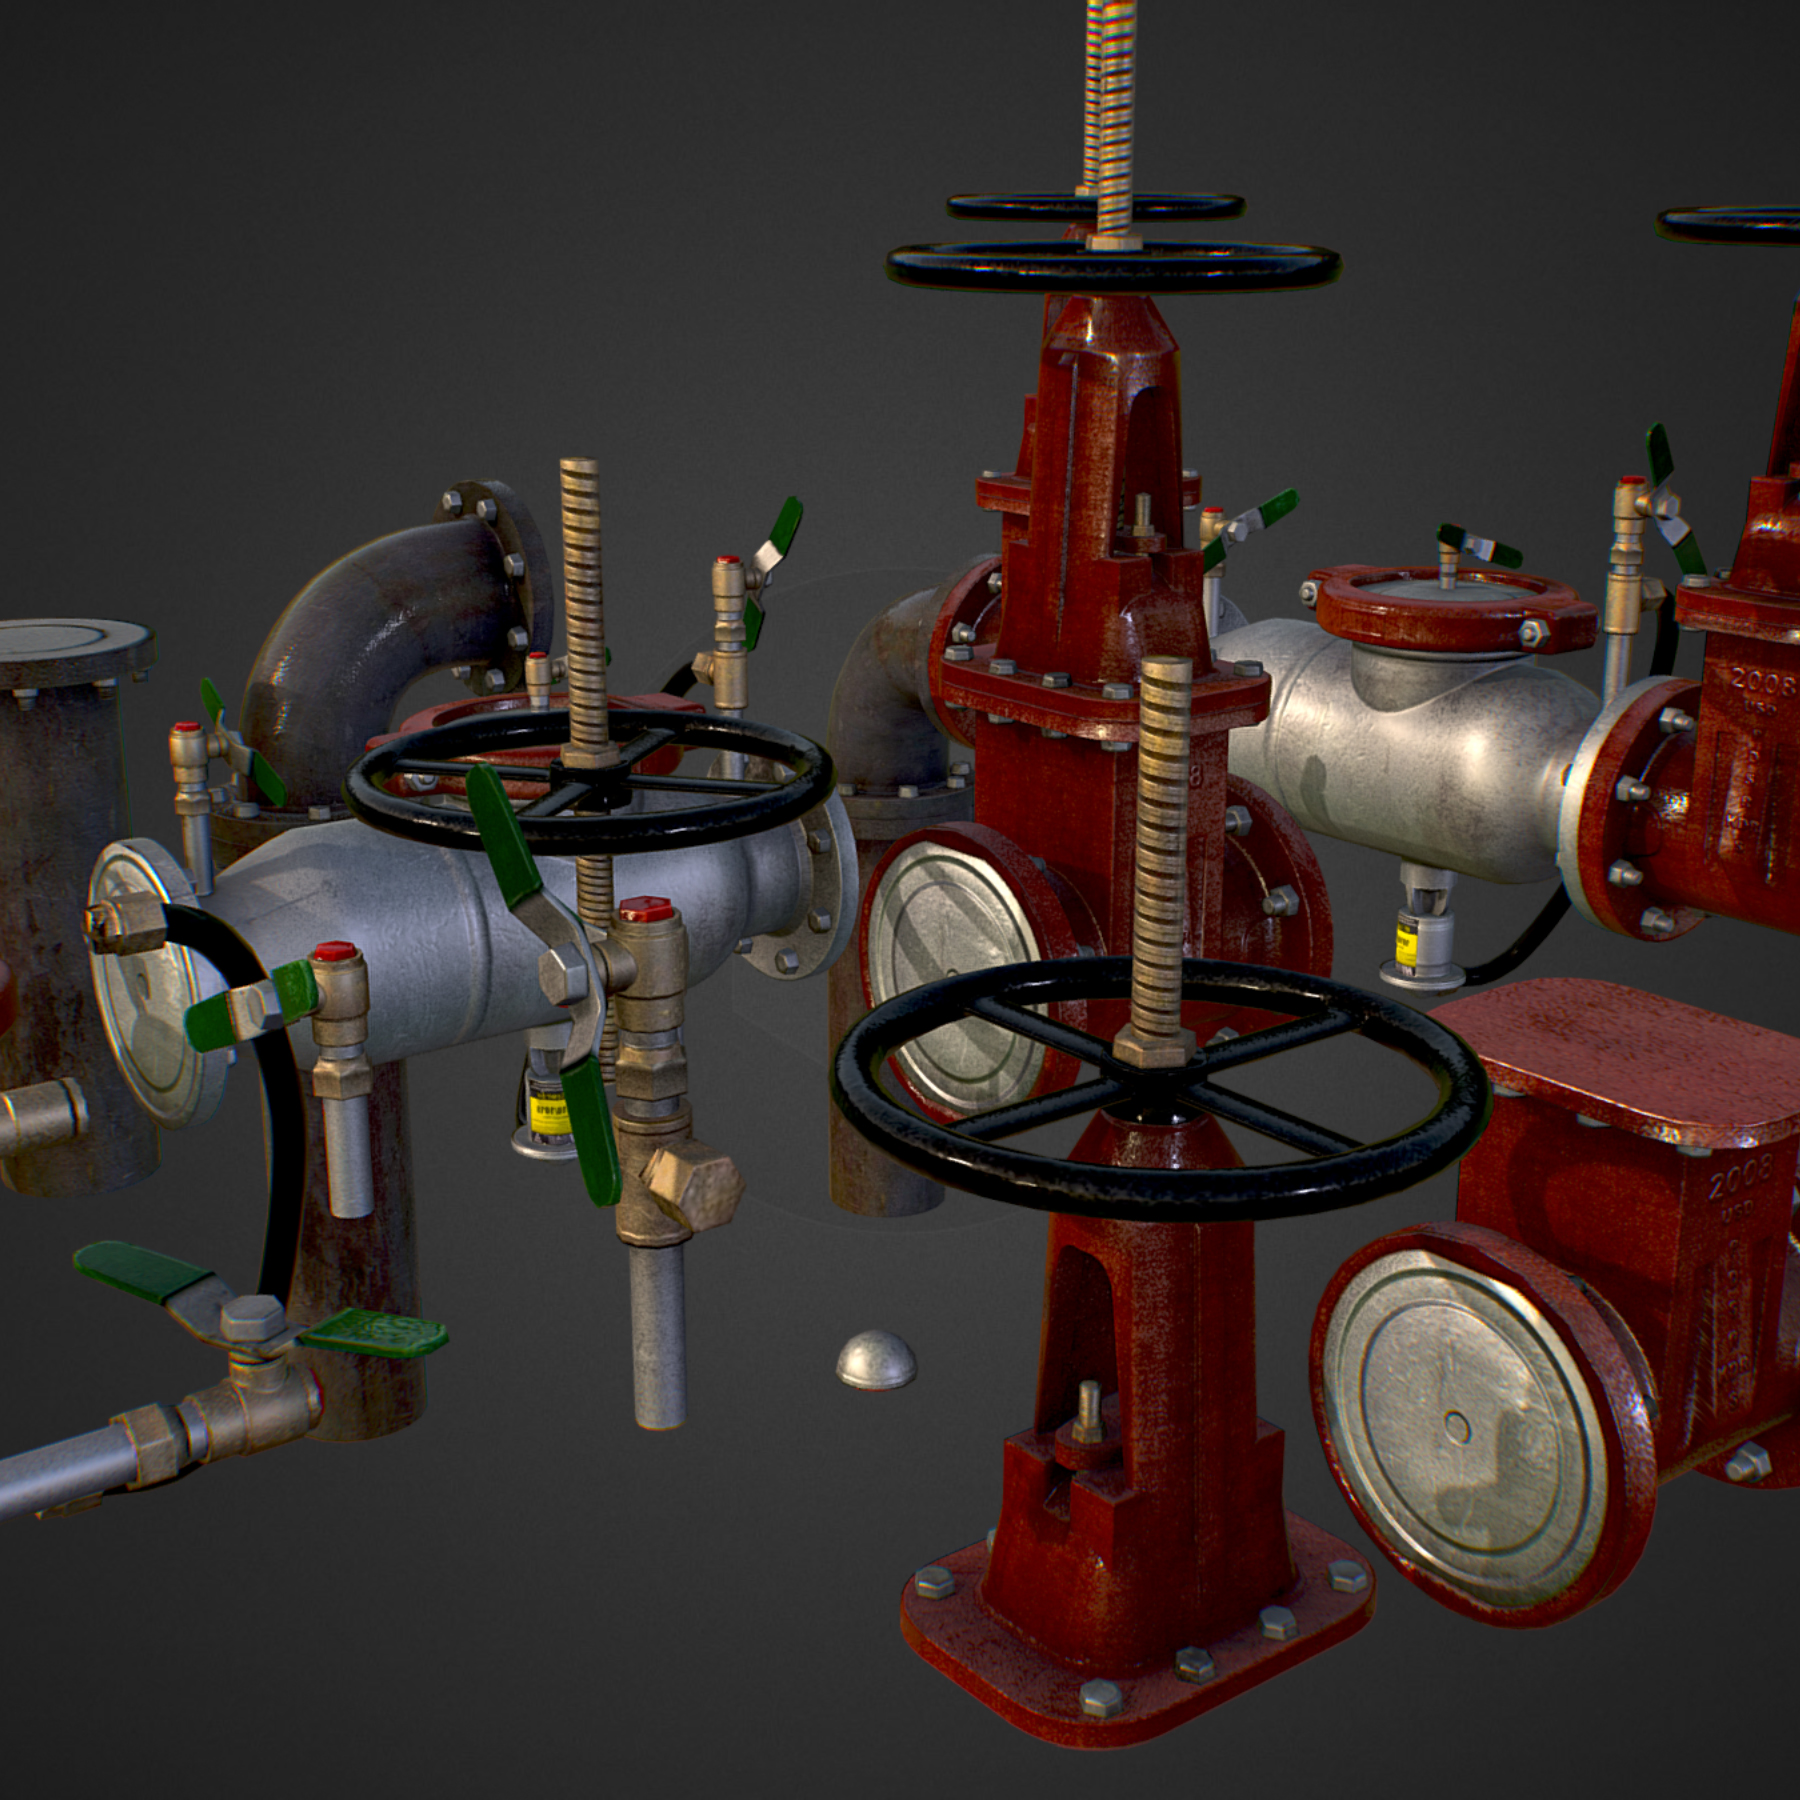 low poly game backflow water pipe constructor 3d model max  fbx ma mb tga targa icb vda vst pix obj 272468